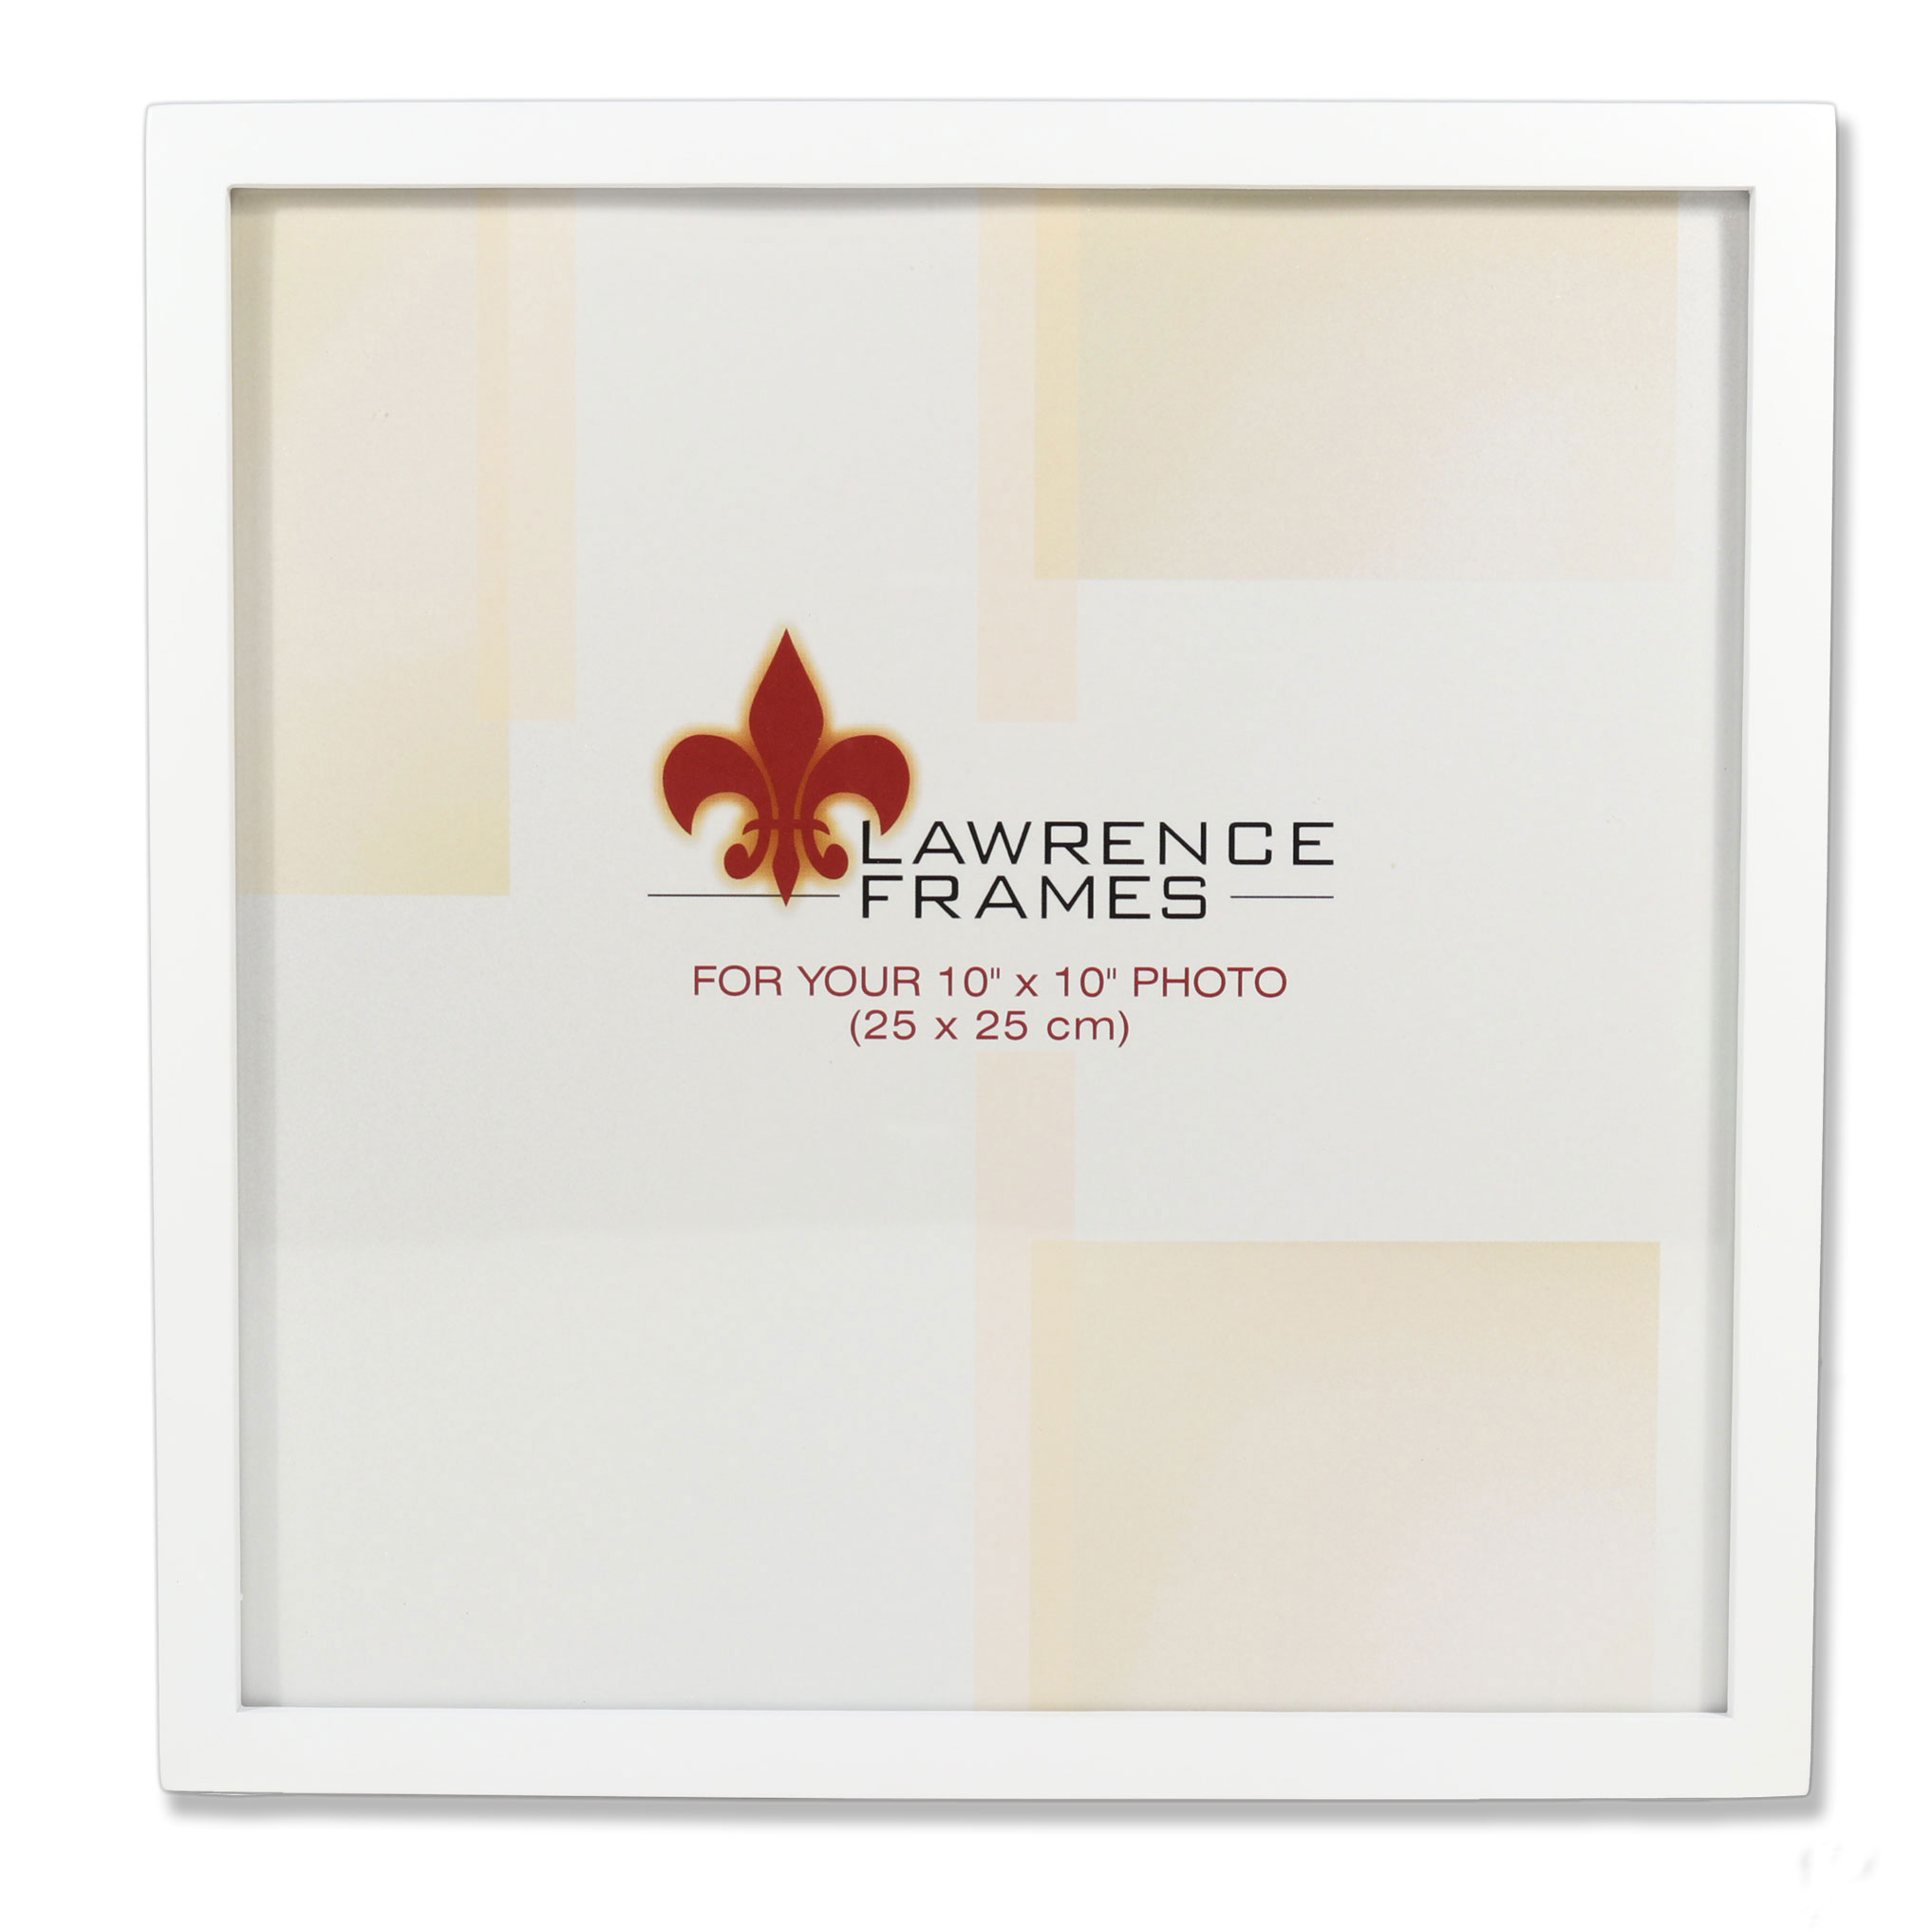 755810 White Wood 10x10 Picture Frame - Walmart.com